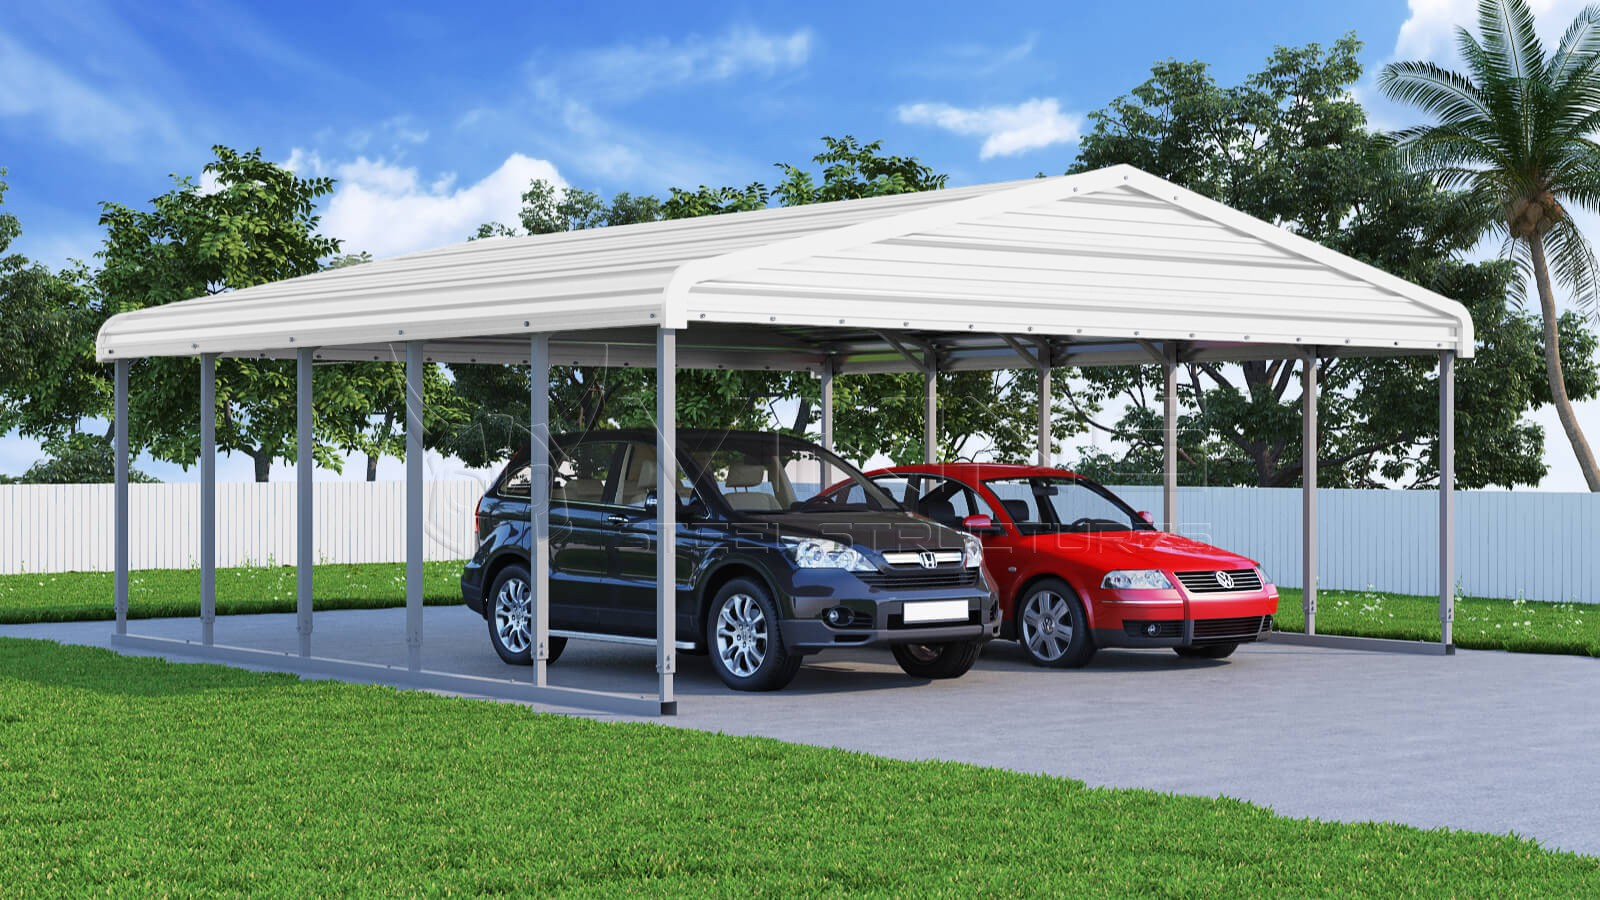 24x26-wide-steel-carport-left-white-image